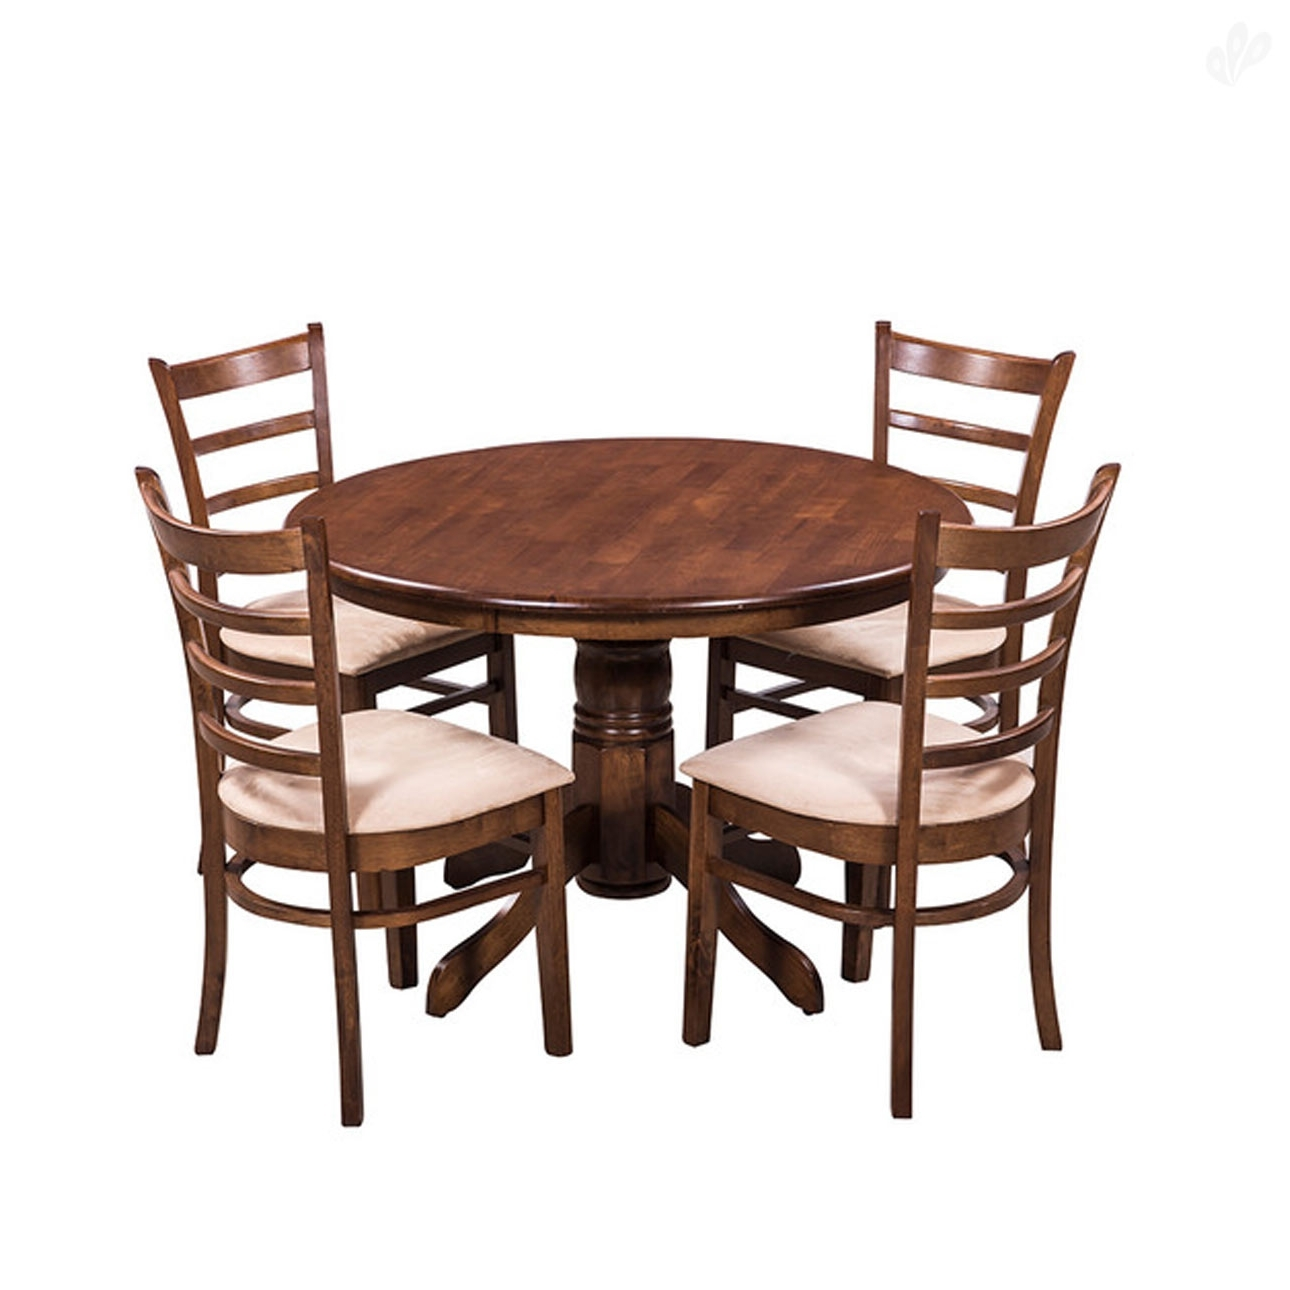 Buy Royaloak Coco Dining Table Set With 4 Chairs Solid Dining Chair Within Widely Used Round Oak Dining Tables And 4 Chairs (Gallery 15 of 25)